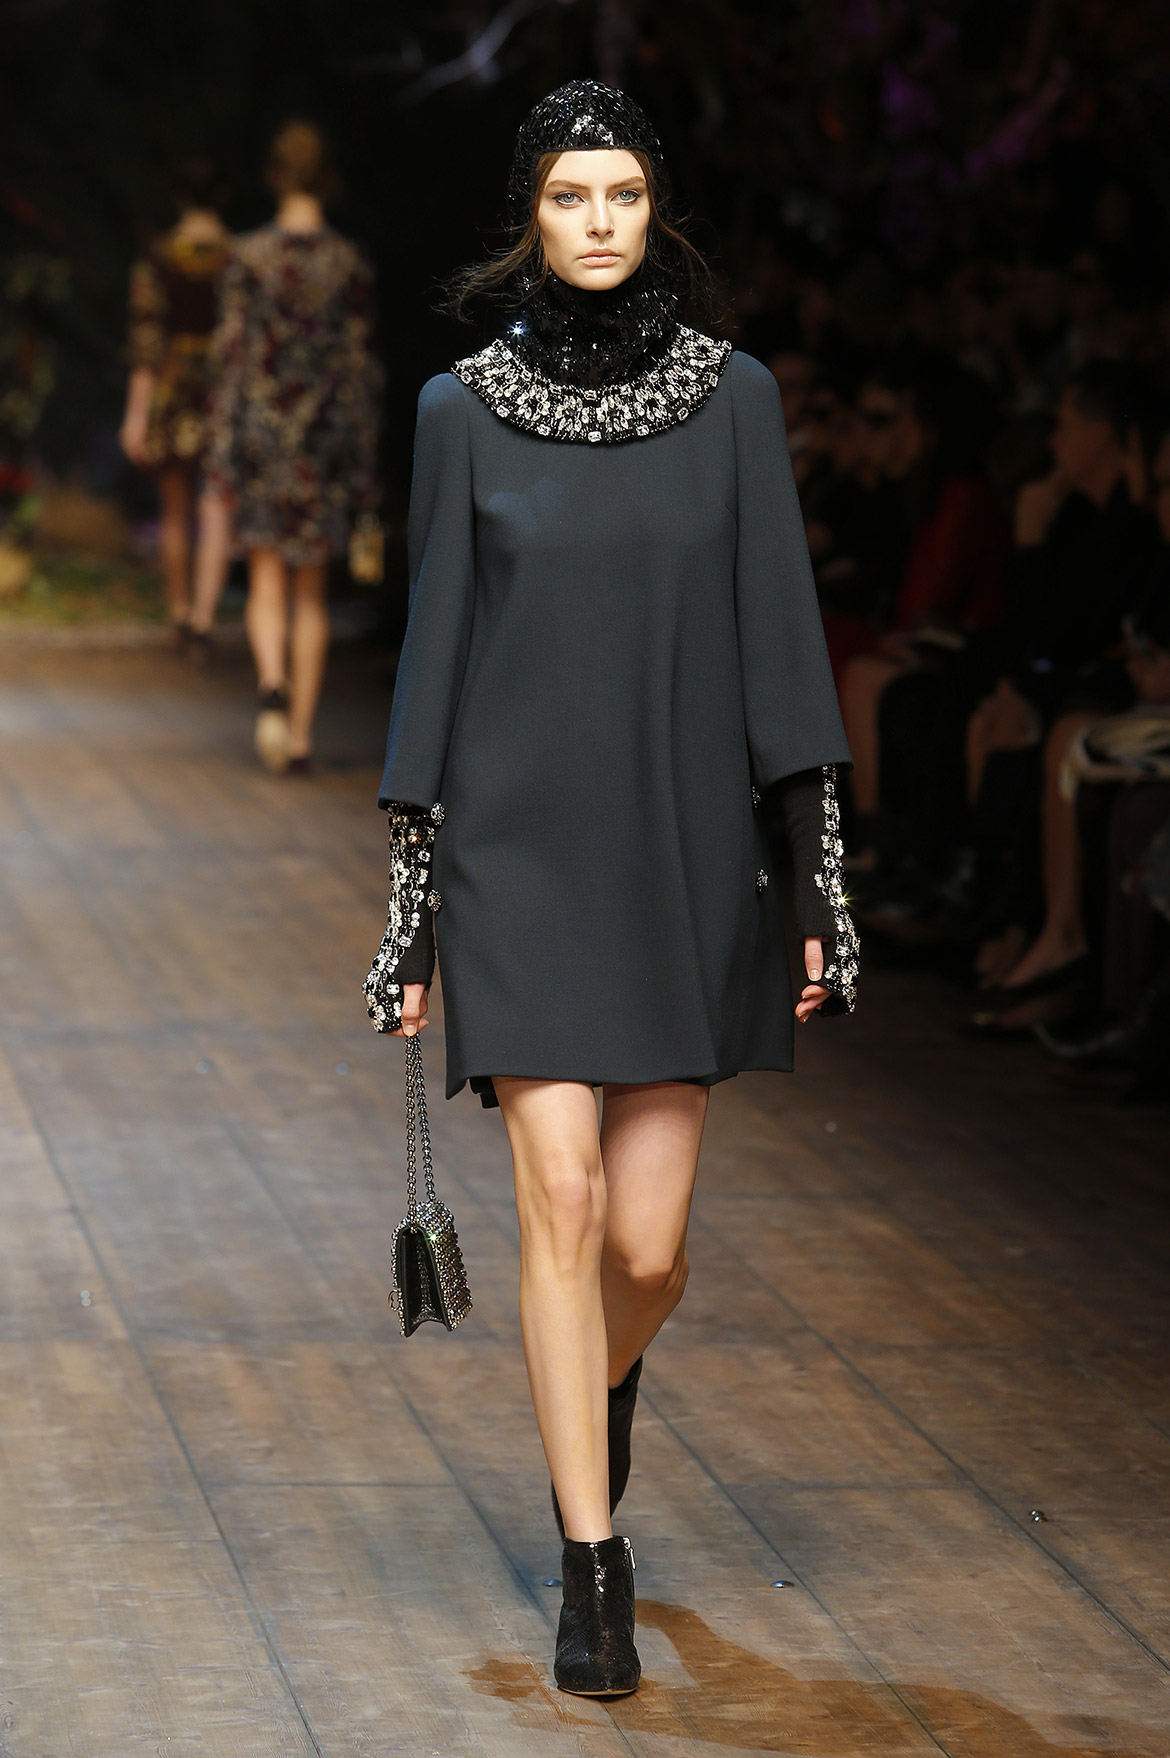 dolce-and-gabbana-fw-2014-2015-women-fashion-show-runway (2)